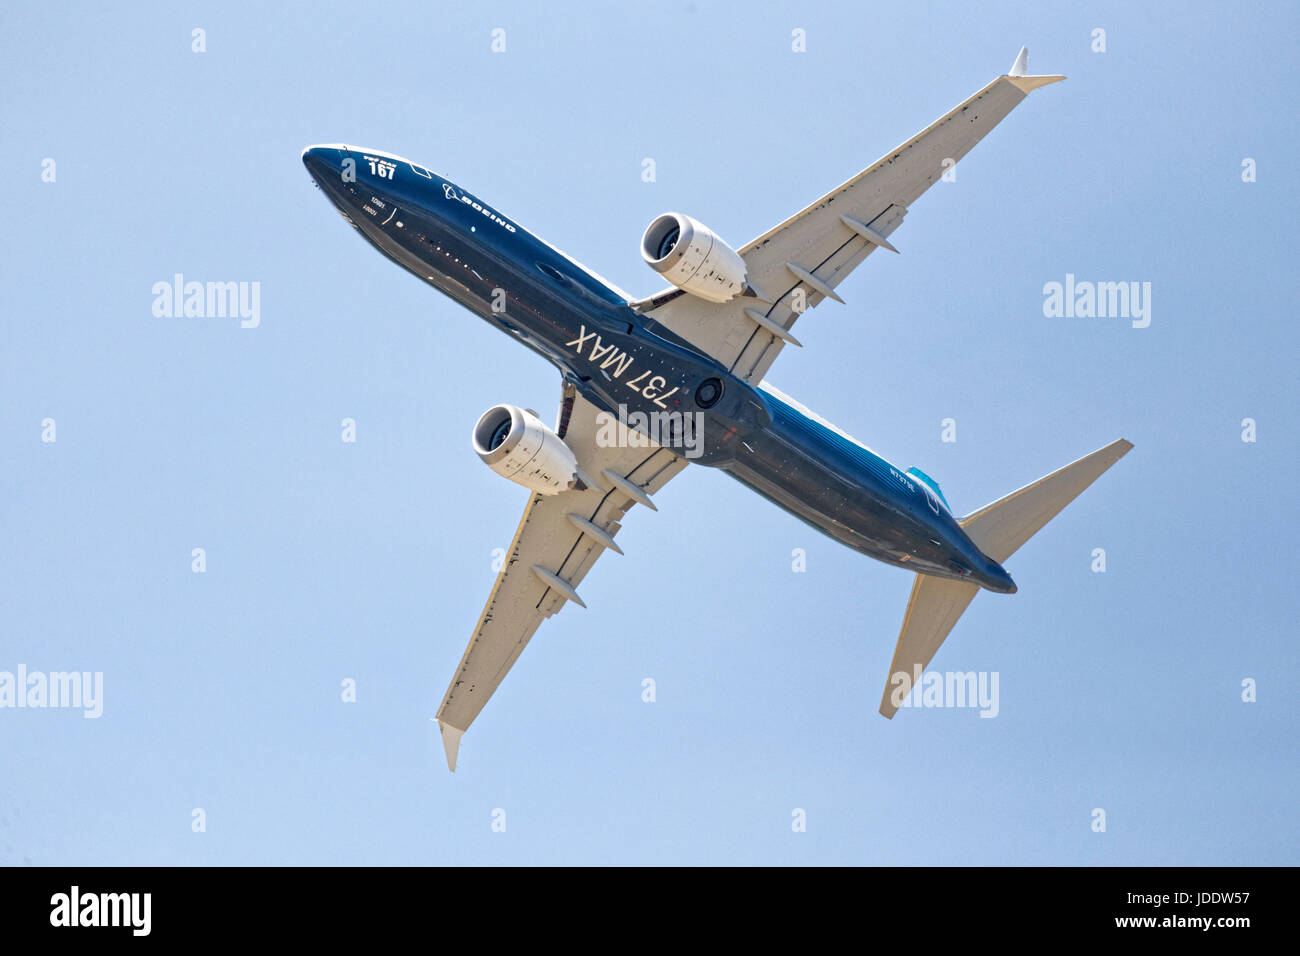 Boeing 737 Max Stock Photos & Boeing 737 Max Stock Images